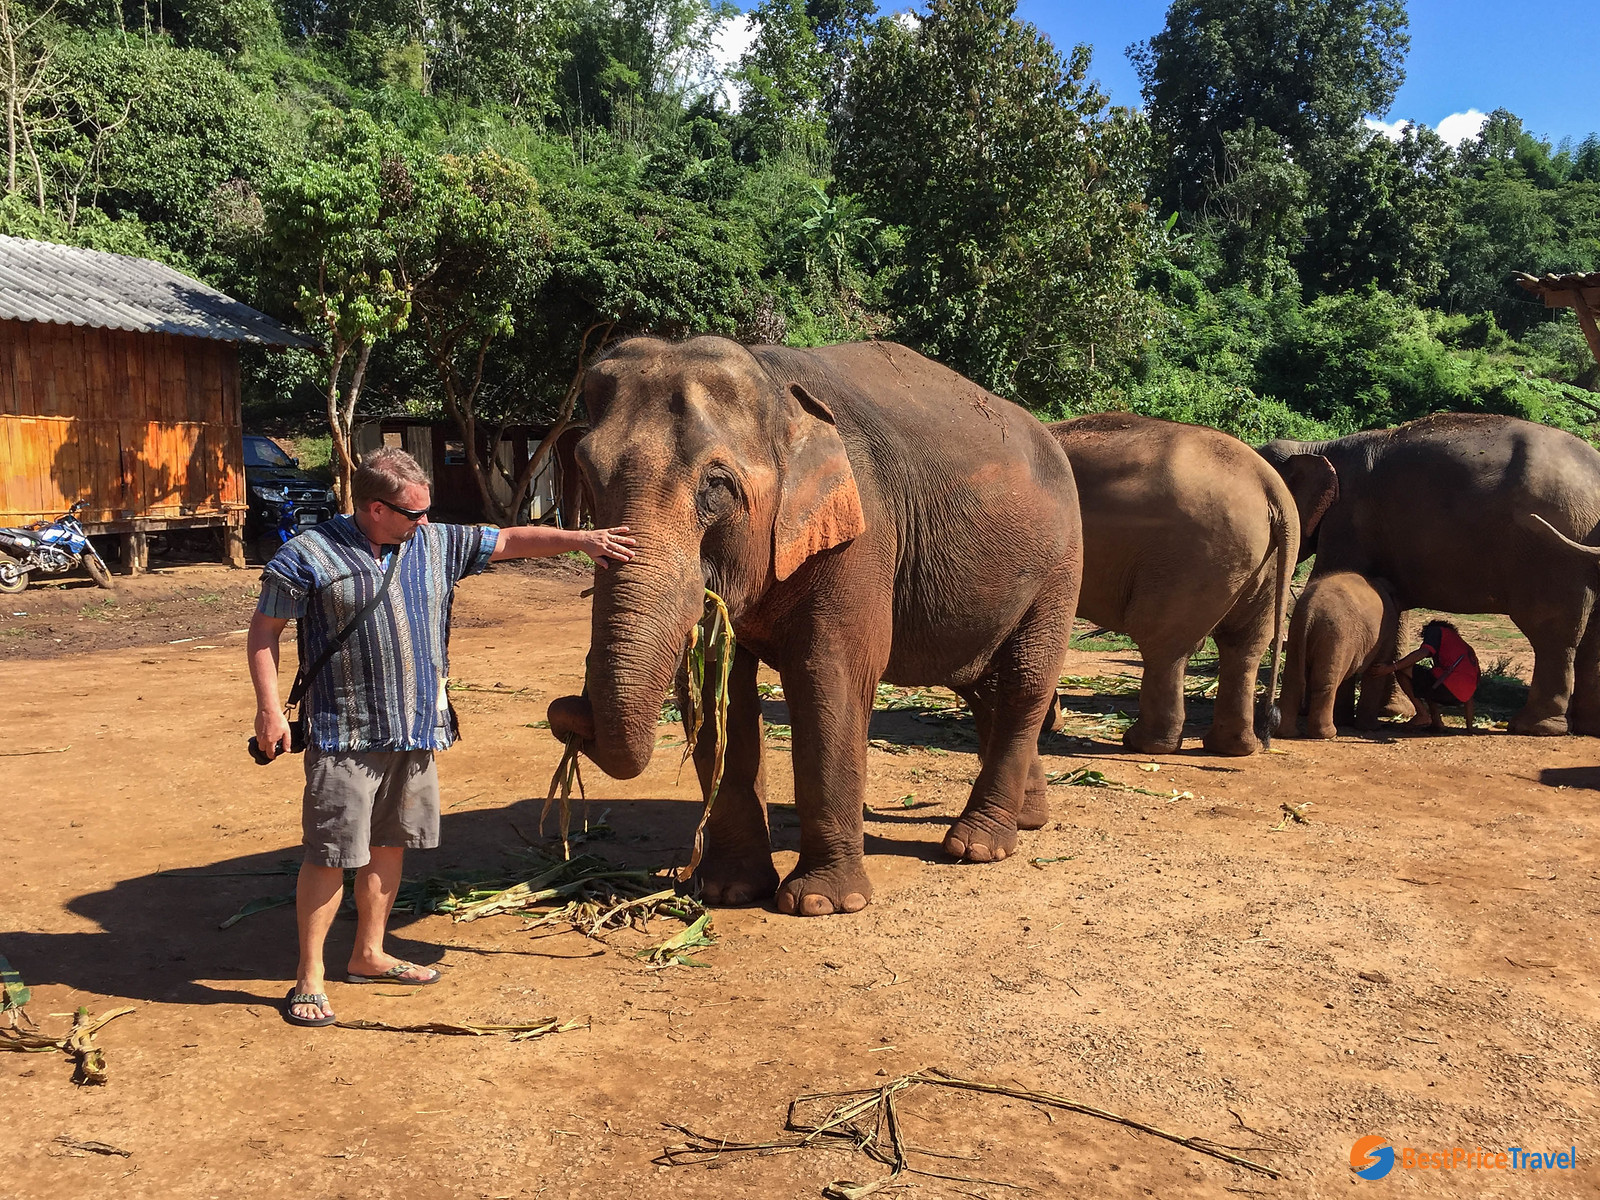 There are many ethical elephant sanctuaries in Chiang Mai